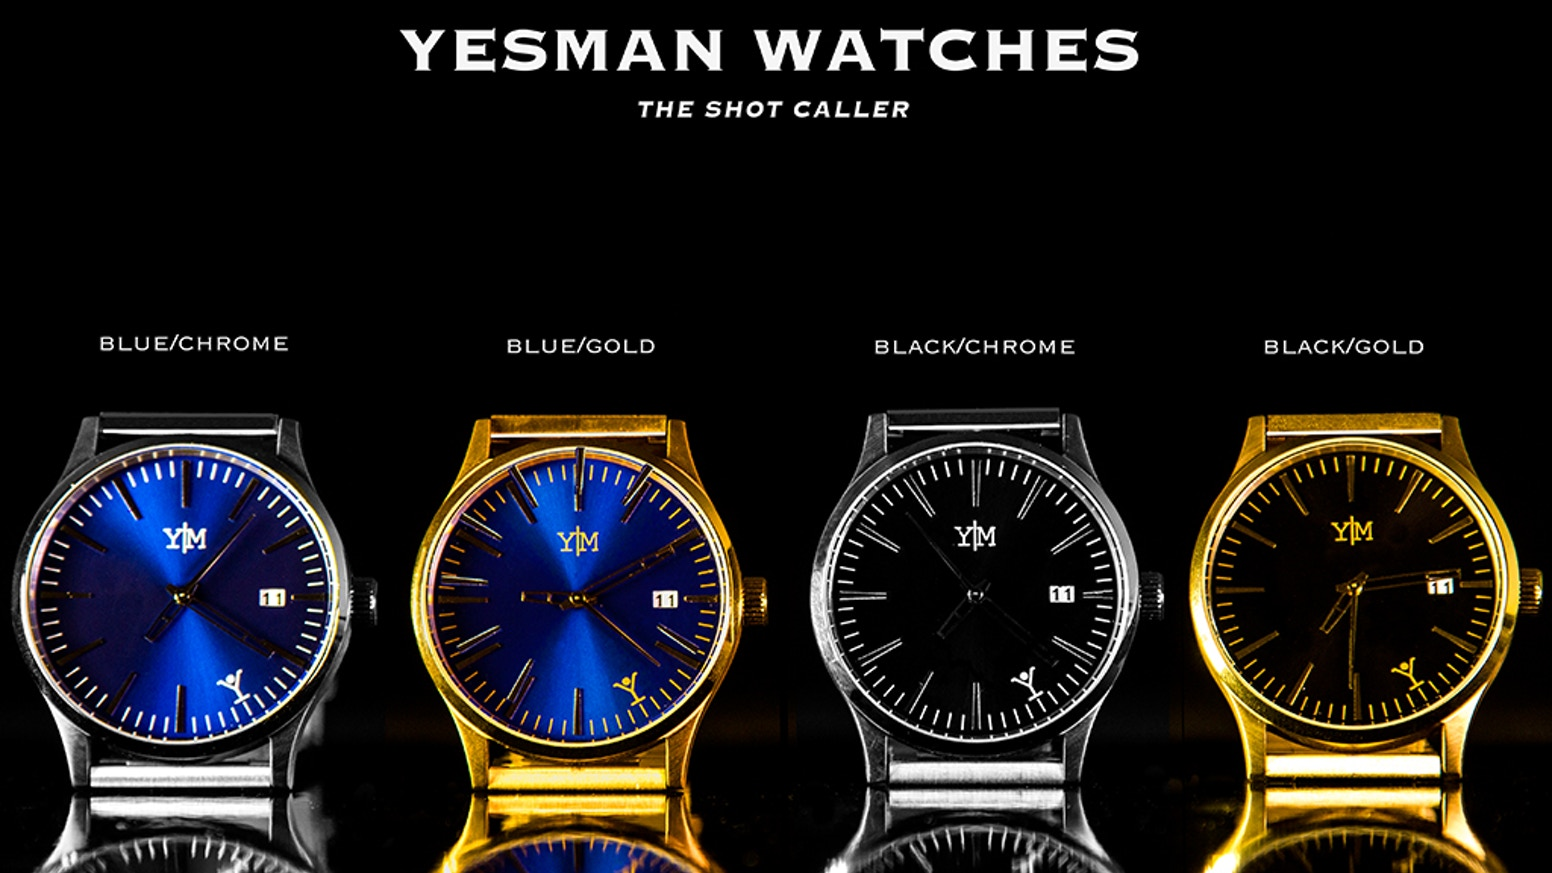 Premium Watches Inspired By a New Outlook On the Value of Time.